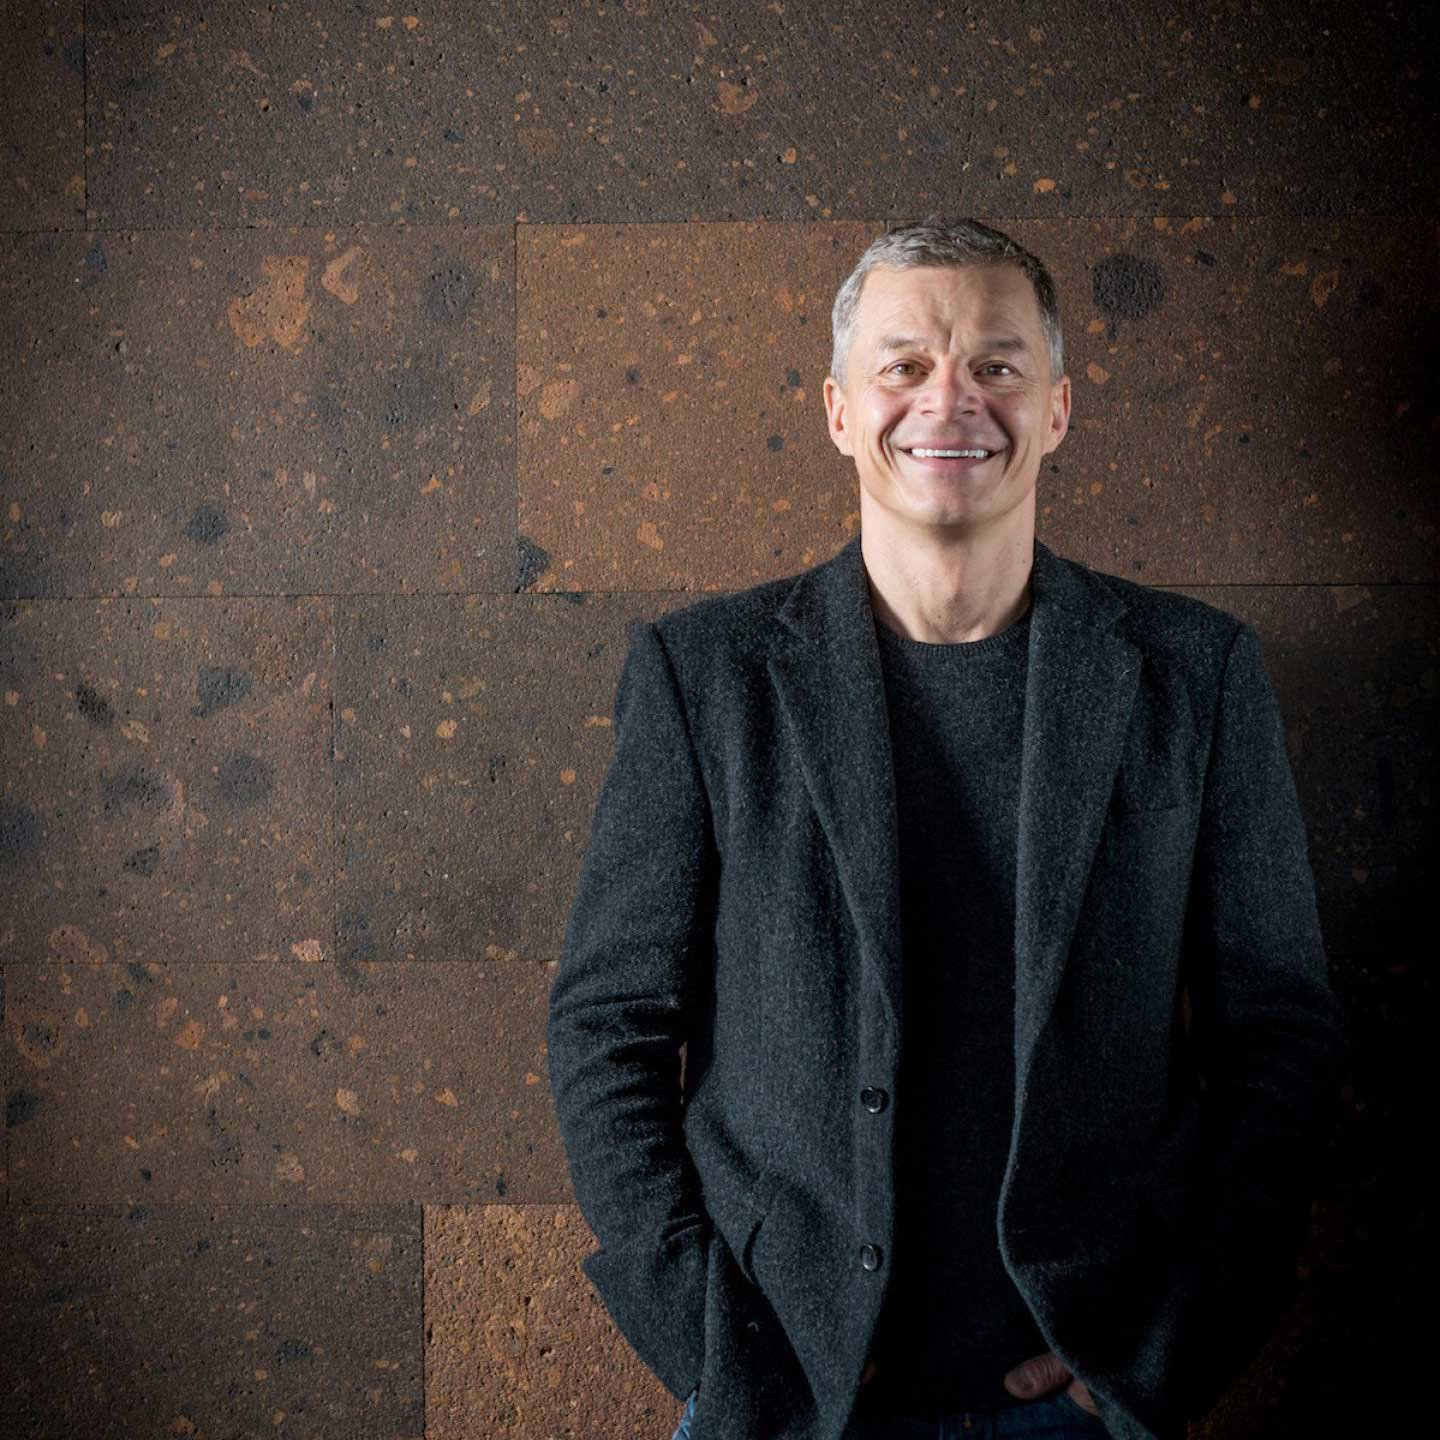 Rainer Becker standing and smiling